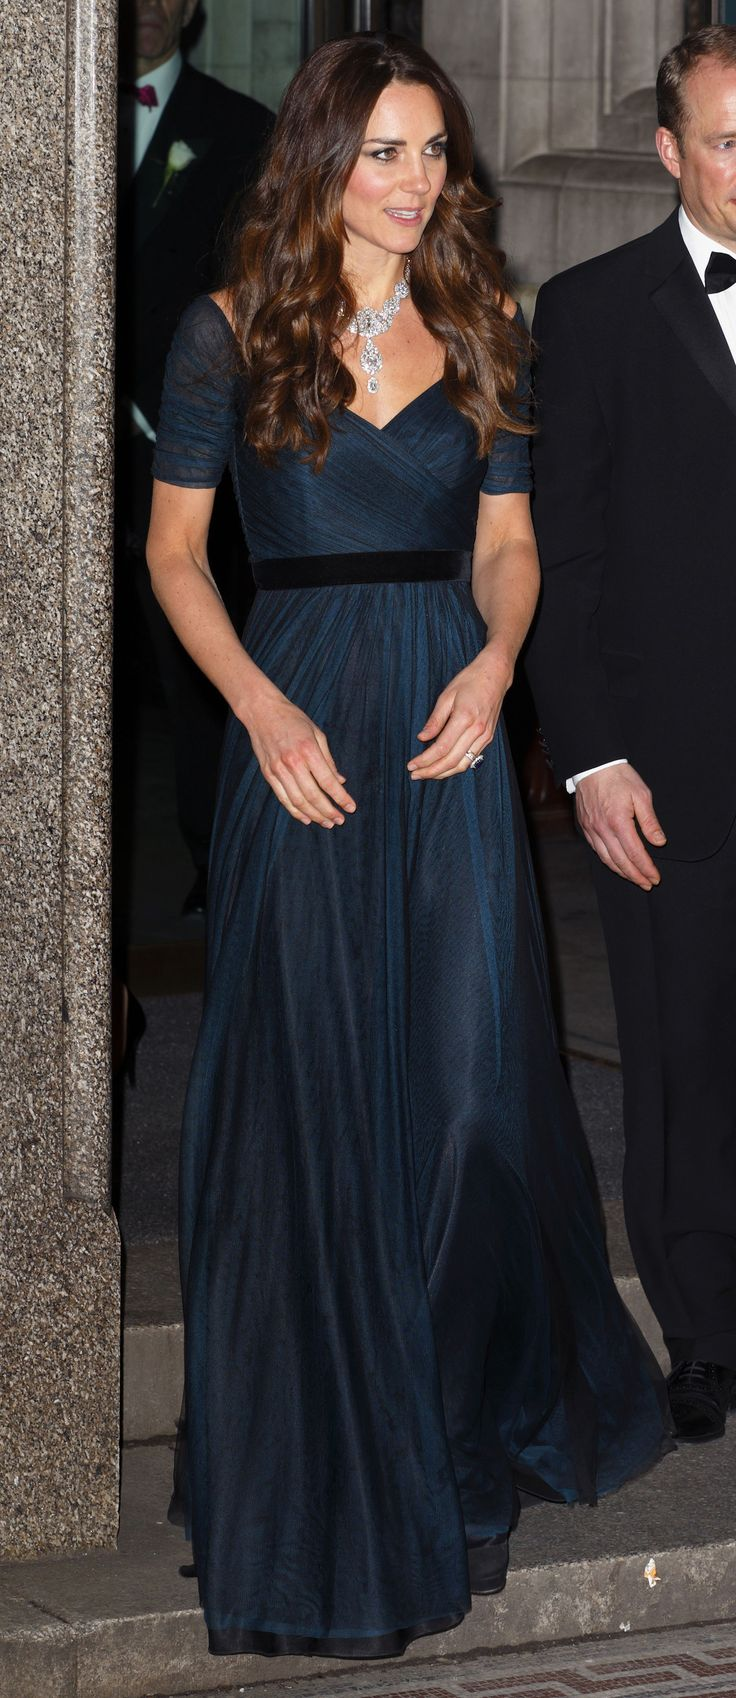 Kate Middleton Wears a Jenny Packham Gown Again, Borrows the Queen's Diamond Necklace